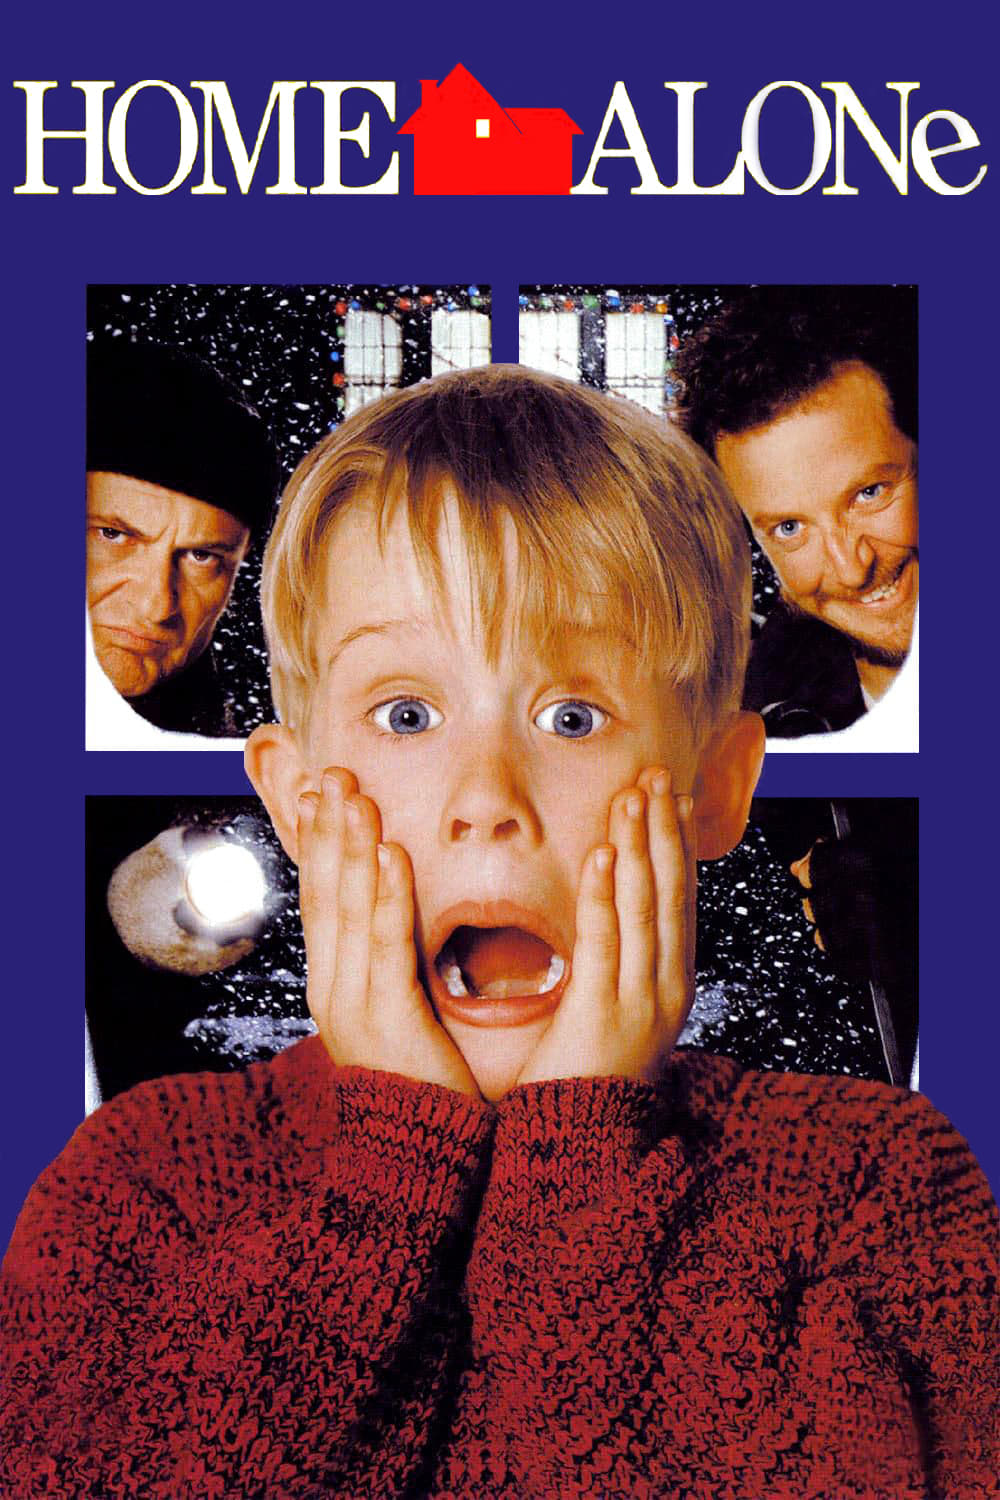 Home Alone (1990)  Posters — The Movie Database (tmdb